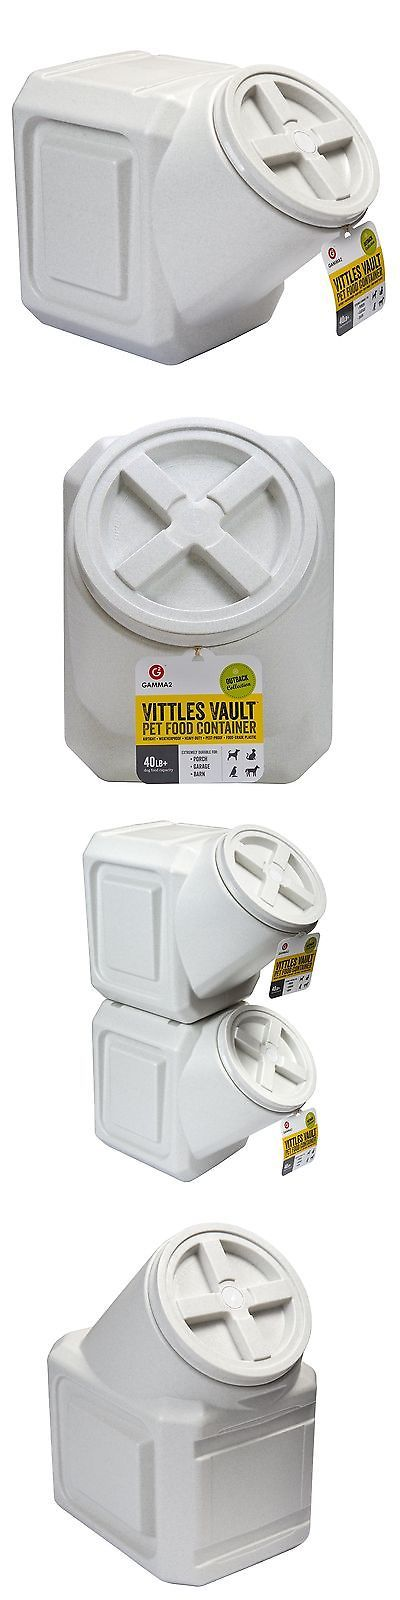 Dishes Feeders and Fountains 177789: Vittles Vault Airtight Stackable Pet Food Container 40 Lbs BUY IT NOW ONLY: $31.32